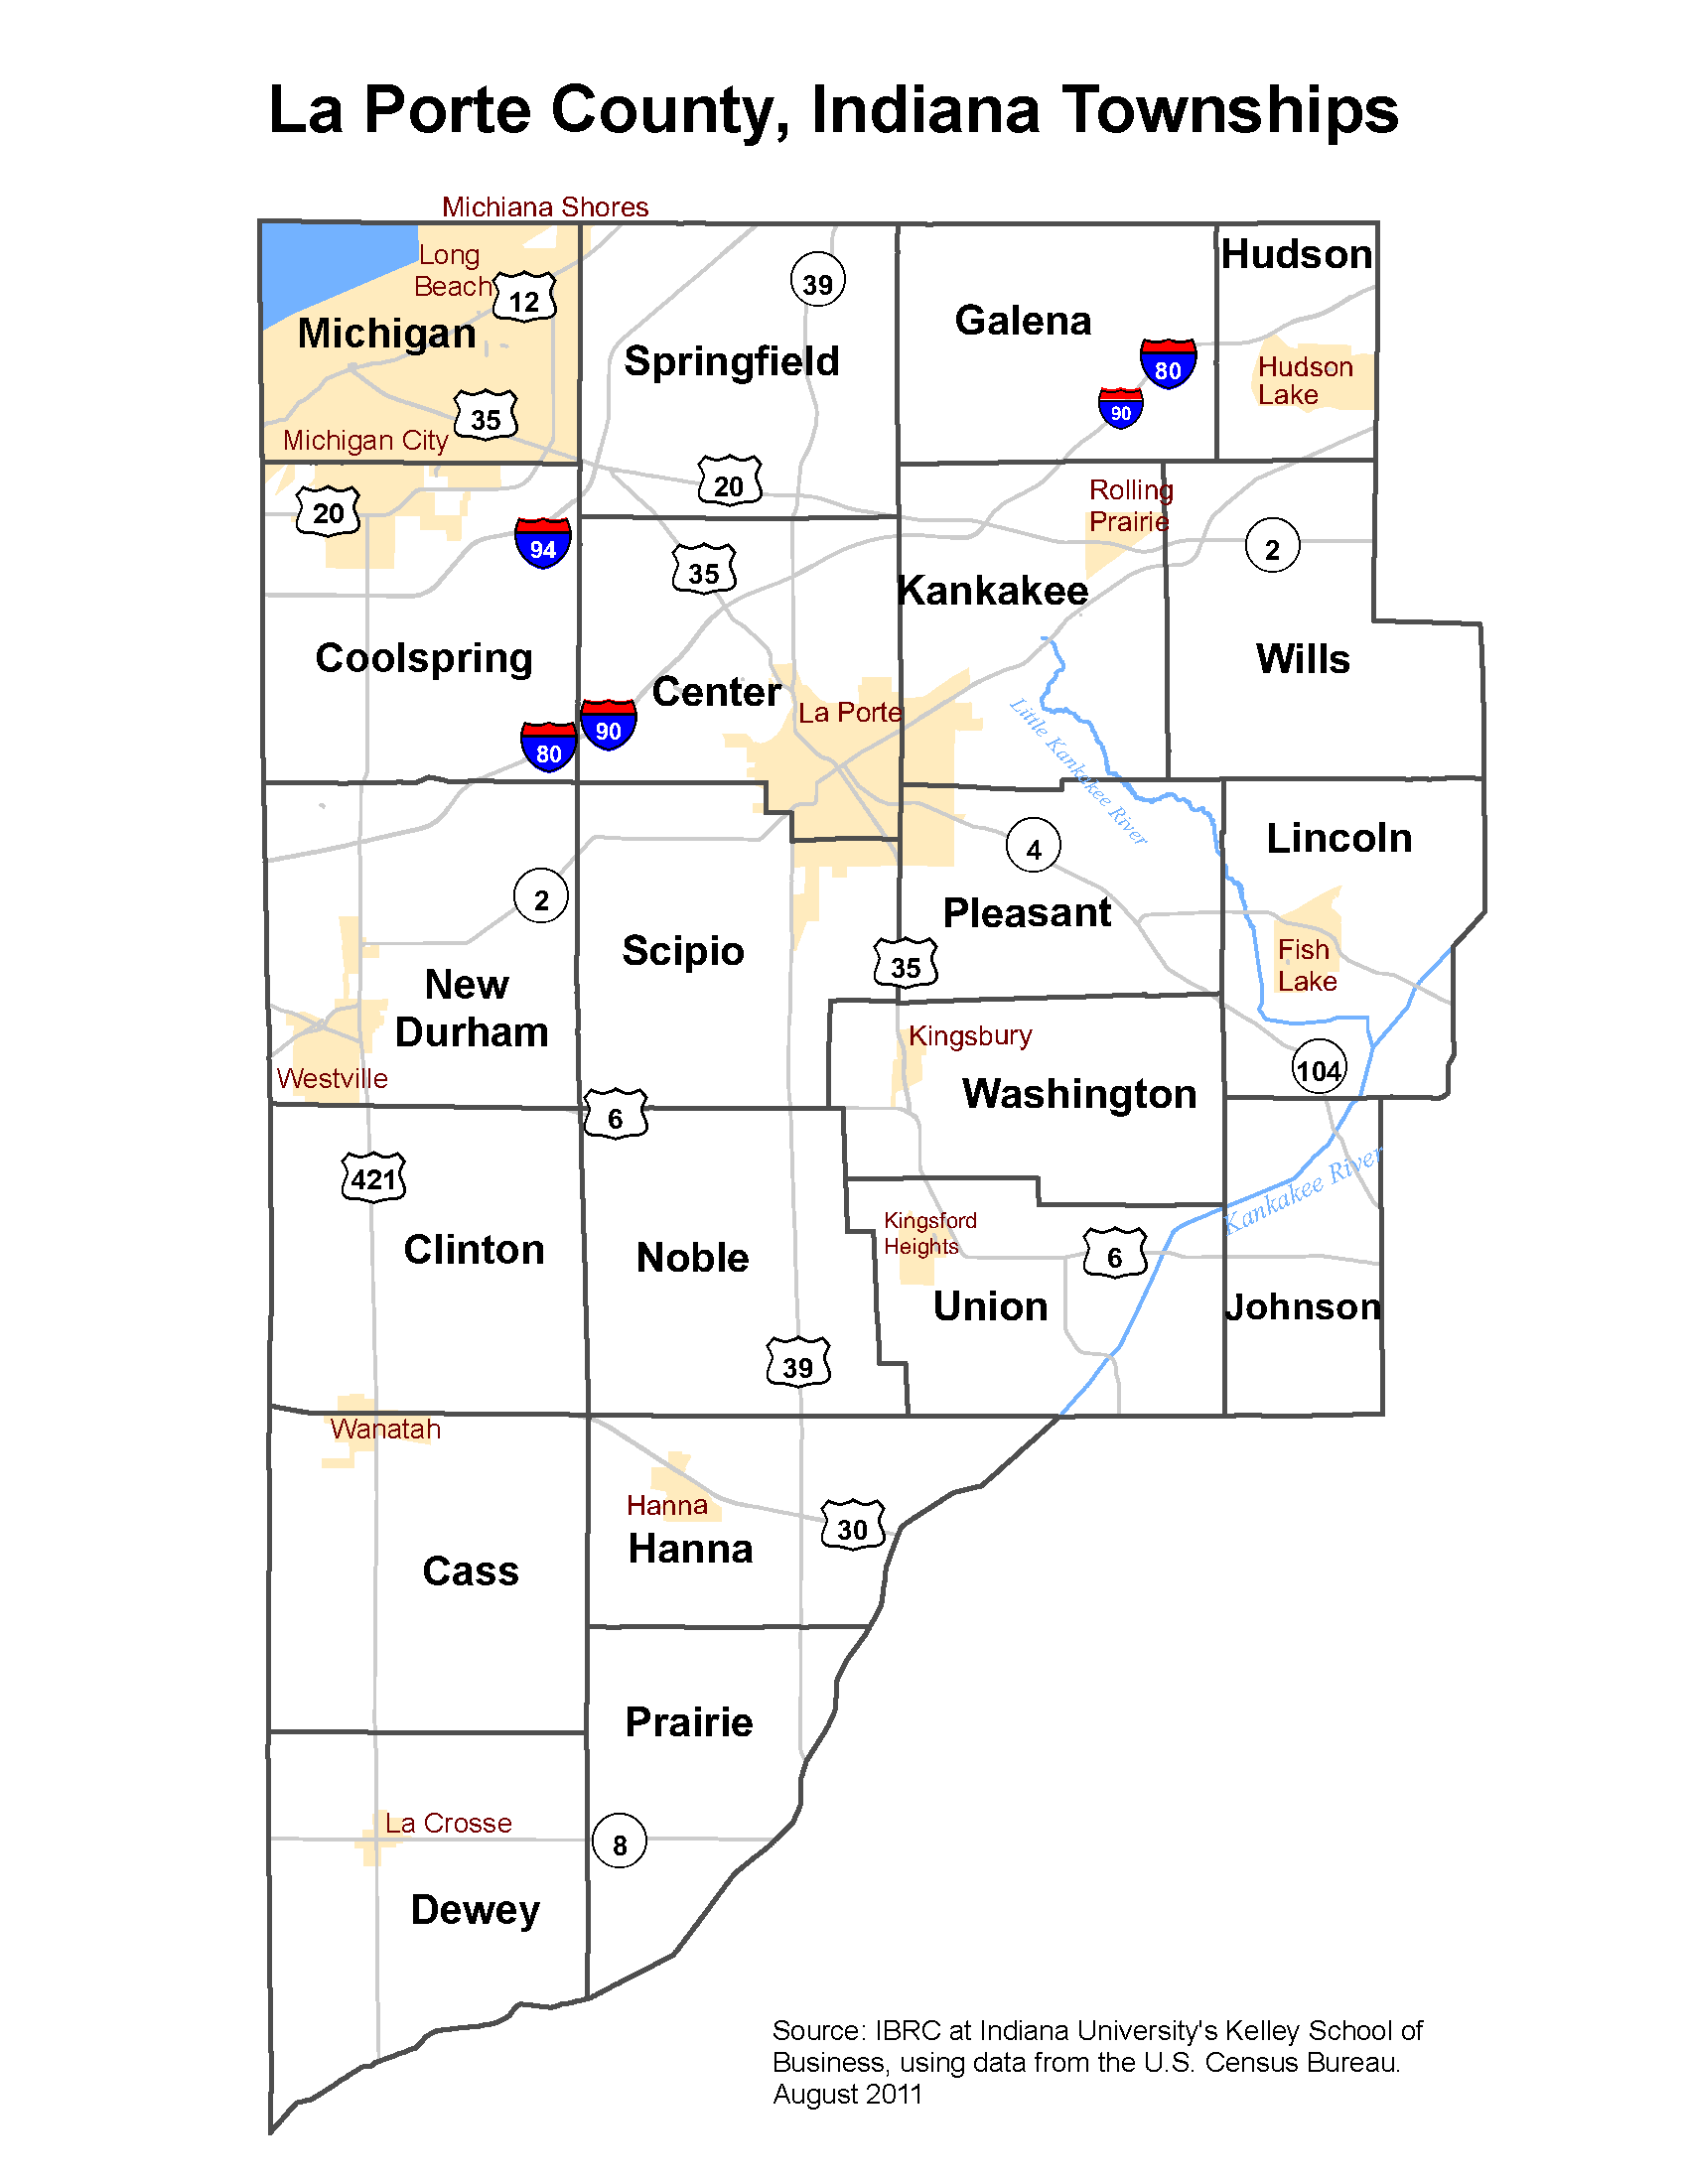 Laporte county township map my blog for Laporte indiana news